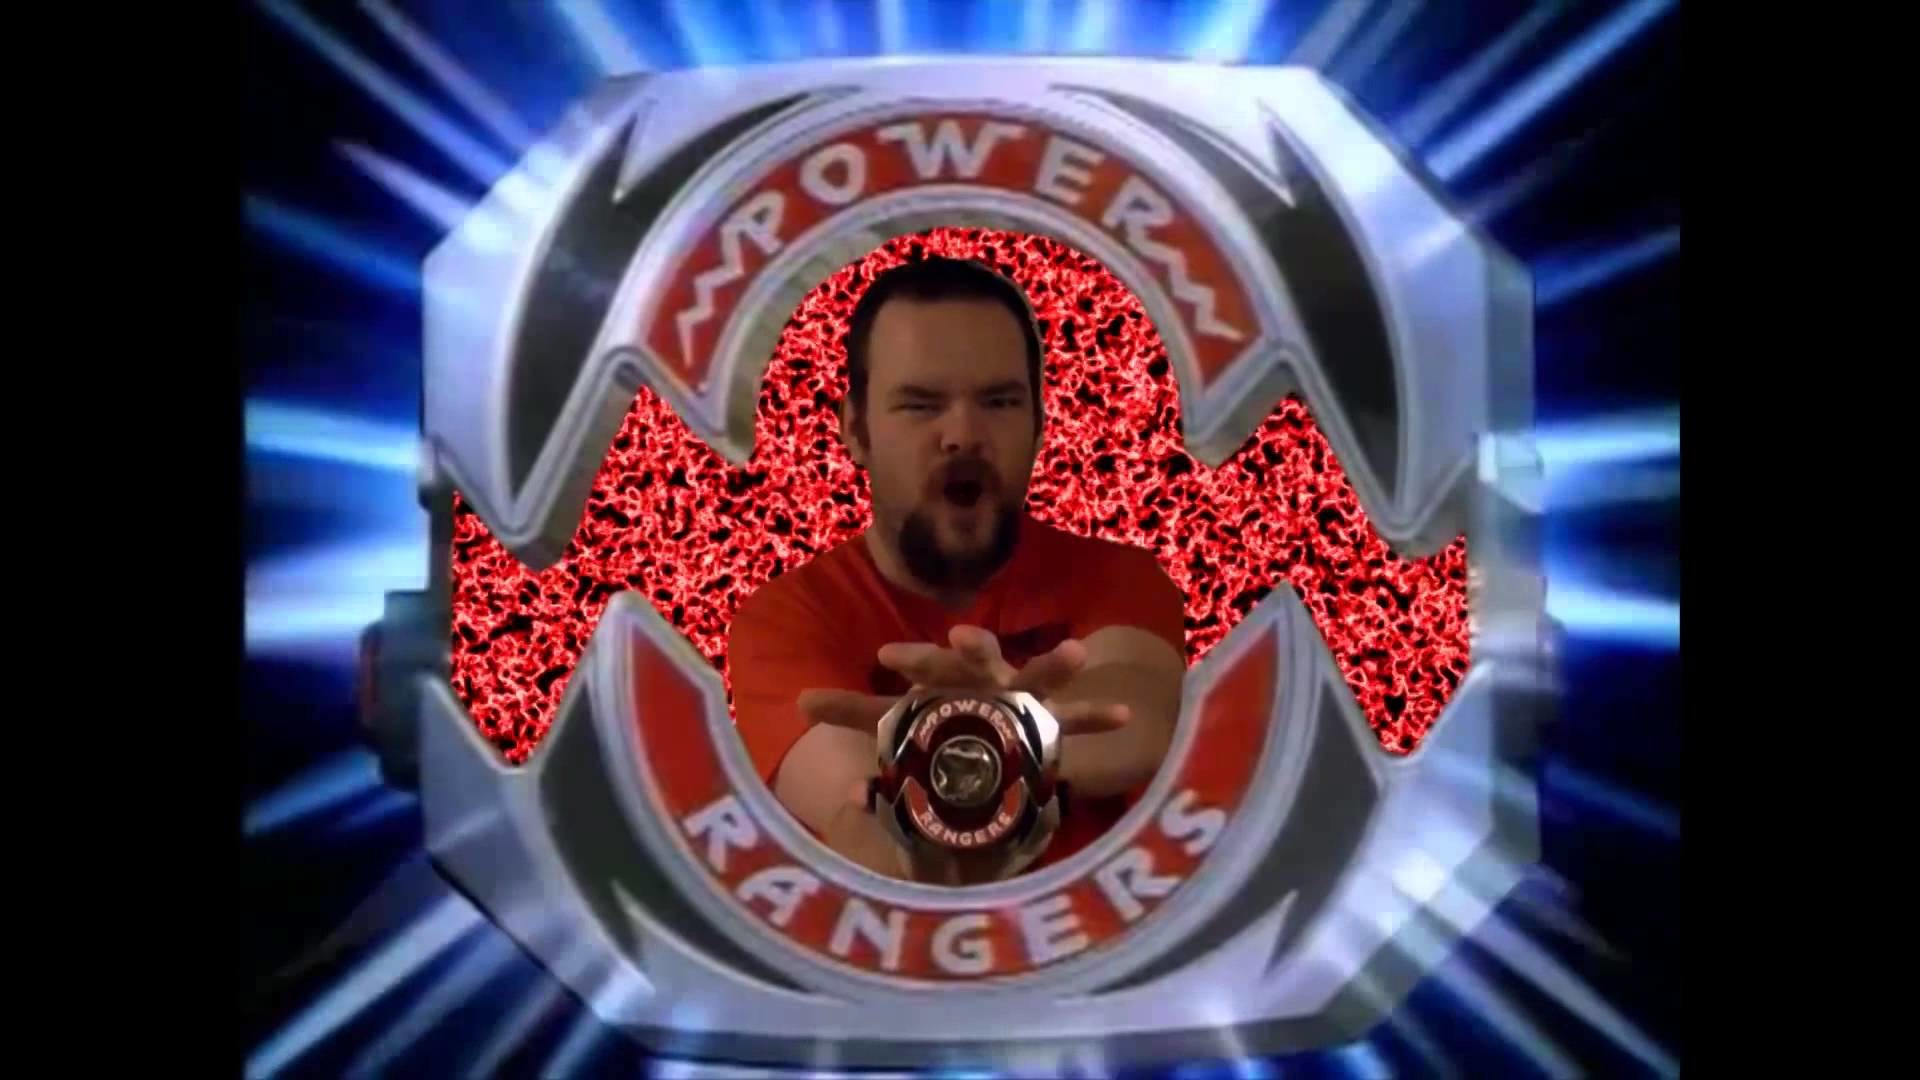 Mighty Morphin Power Rangers Wallpaper 72 Images